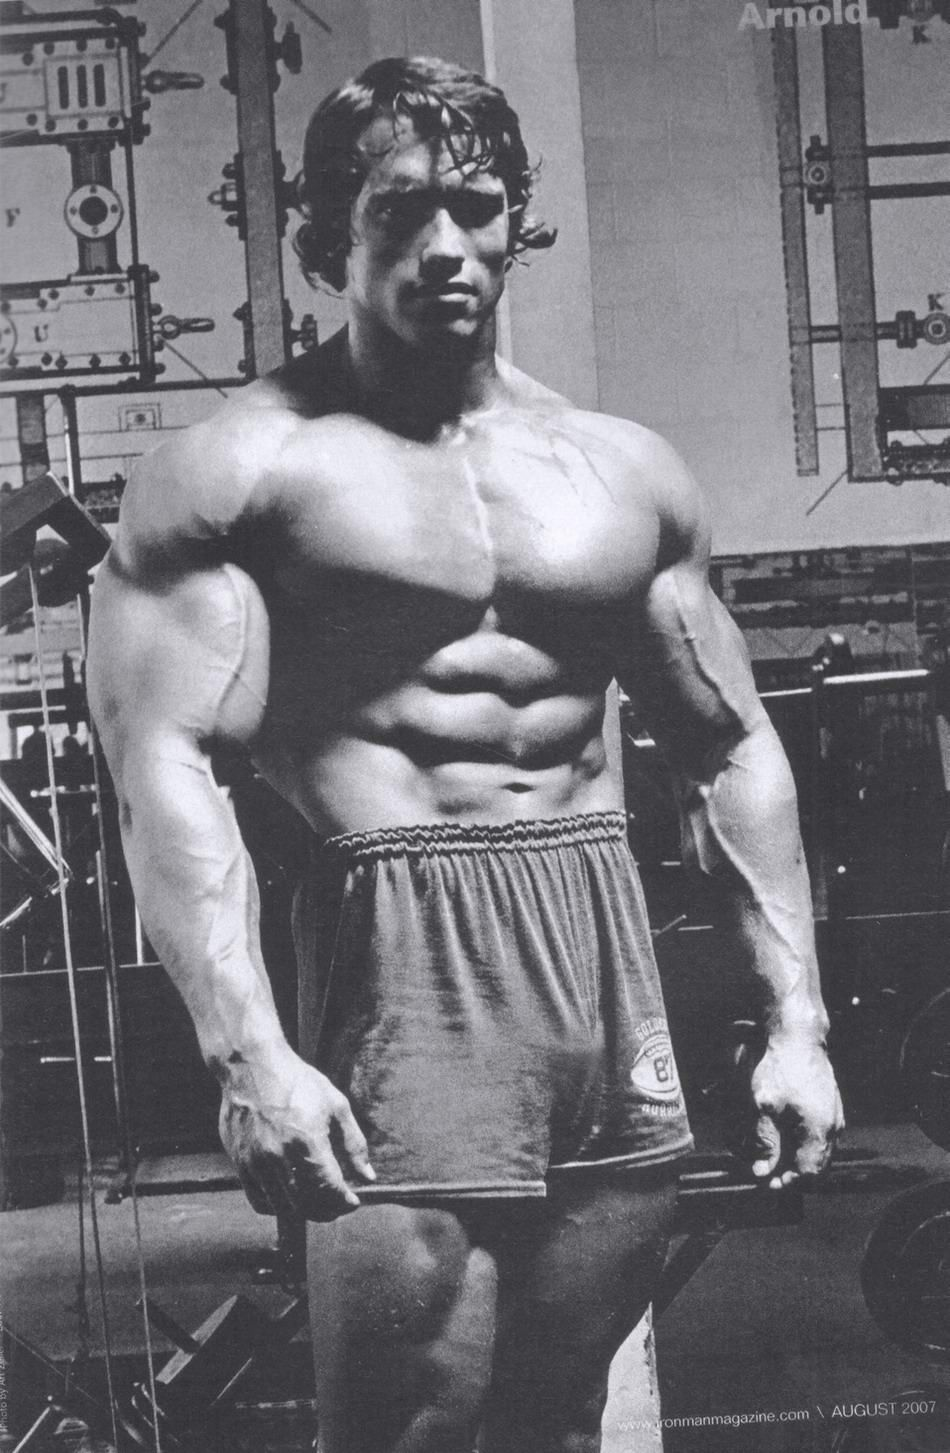 Arnold Schwarzenegger The Best Gallery Of This Bodybuilding Icon Schwarzenegger Bodybuilding Arnold Schwarzenegger Bodybuilding Arnold Schwarzenegger